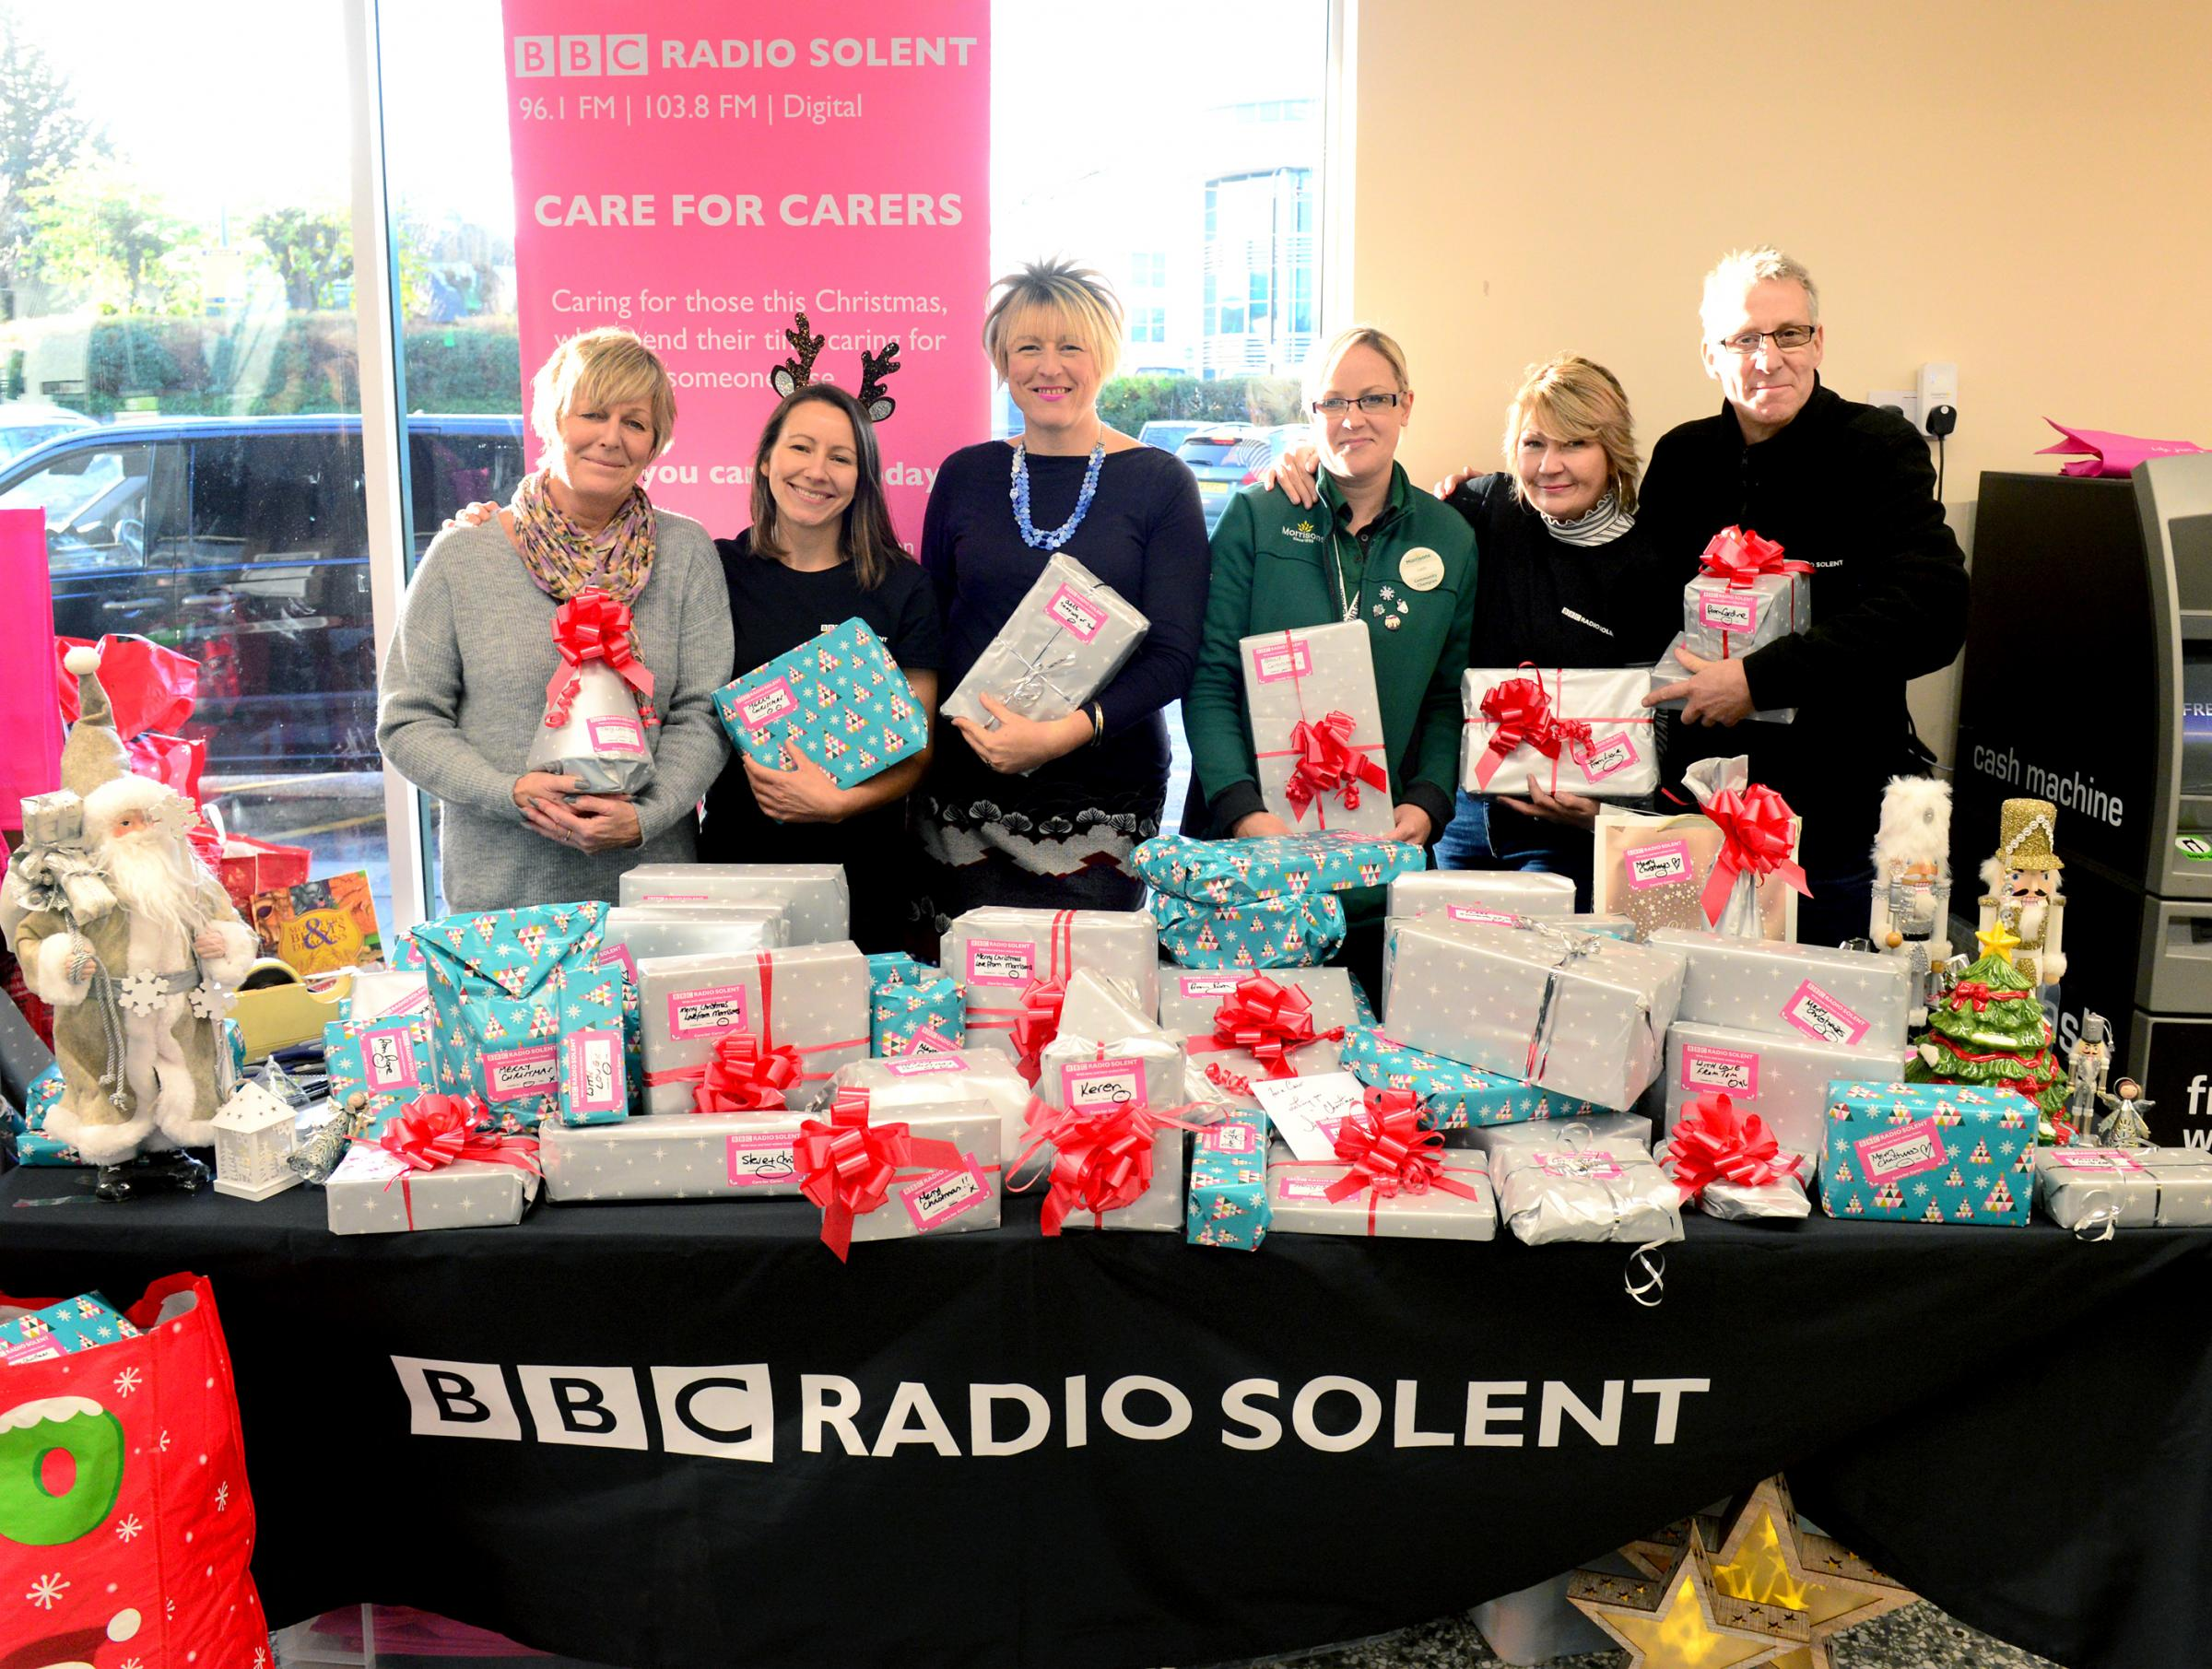 Newport - BBC Radio Solent collecting unwrapped gifts for Christmas at Morrisons. Left, Julie Cocker from Carers IW with Julie Massiter, Rebecca Parker, Morrisons Community Champion Leah Tosdevin, Justine Field and Alun Newman..